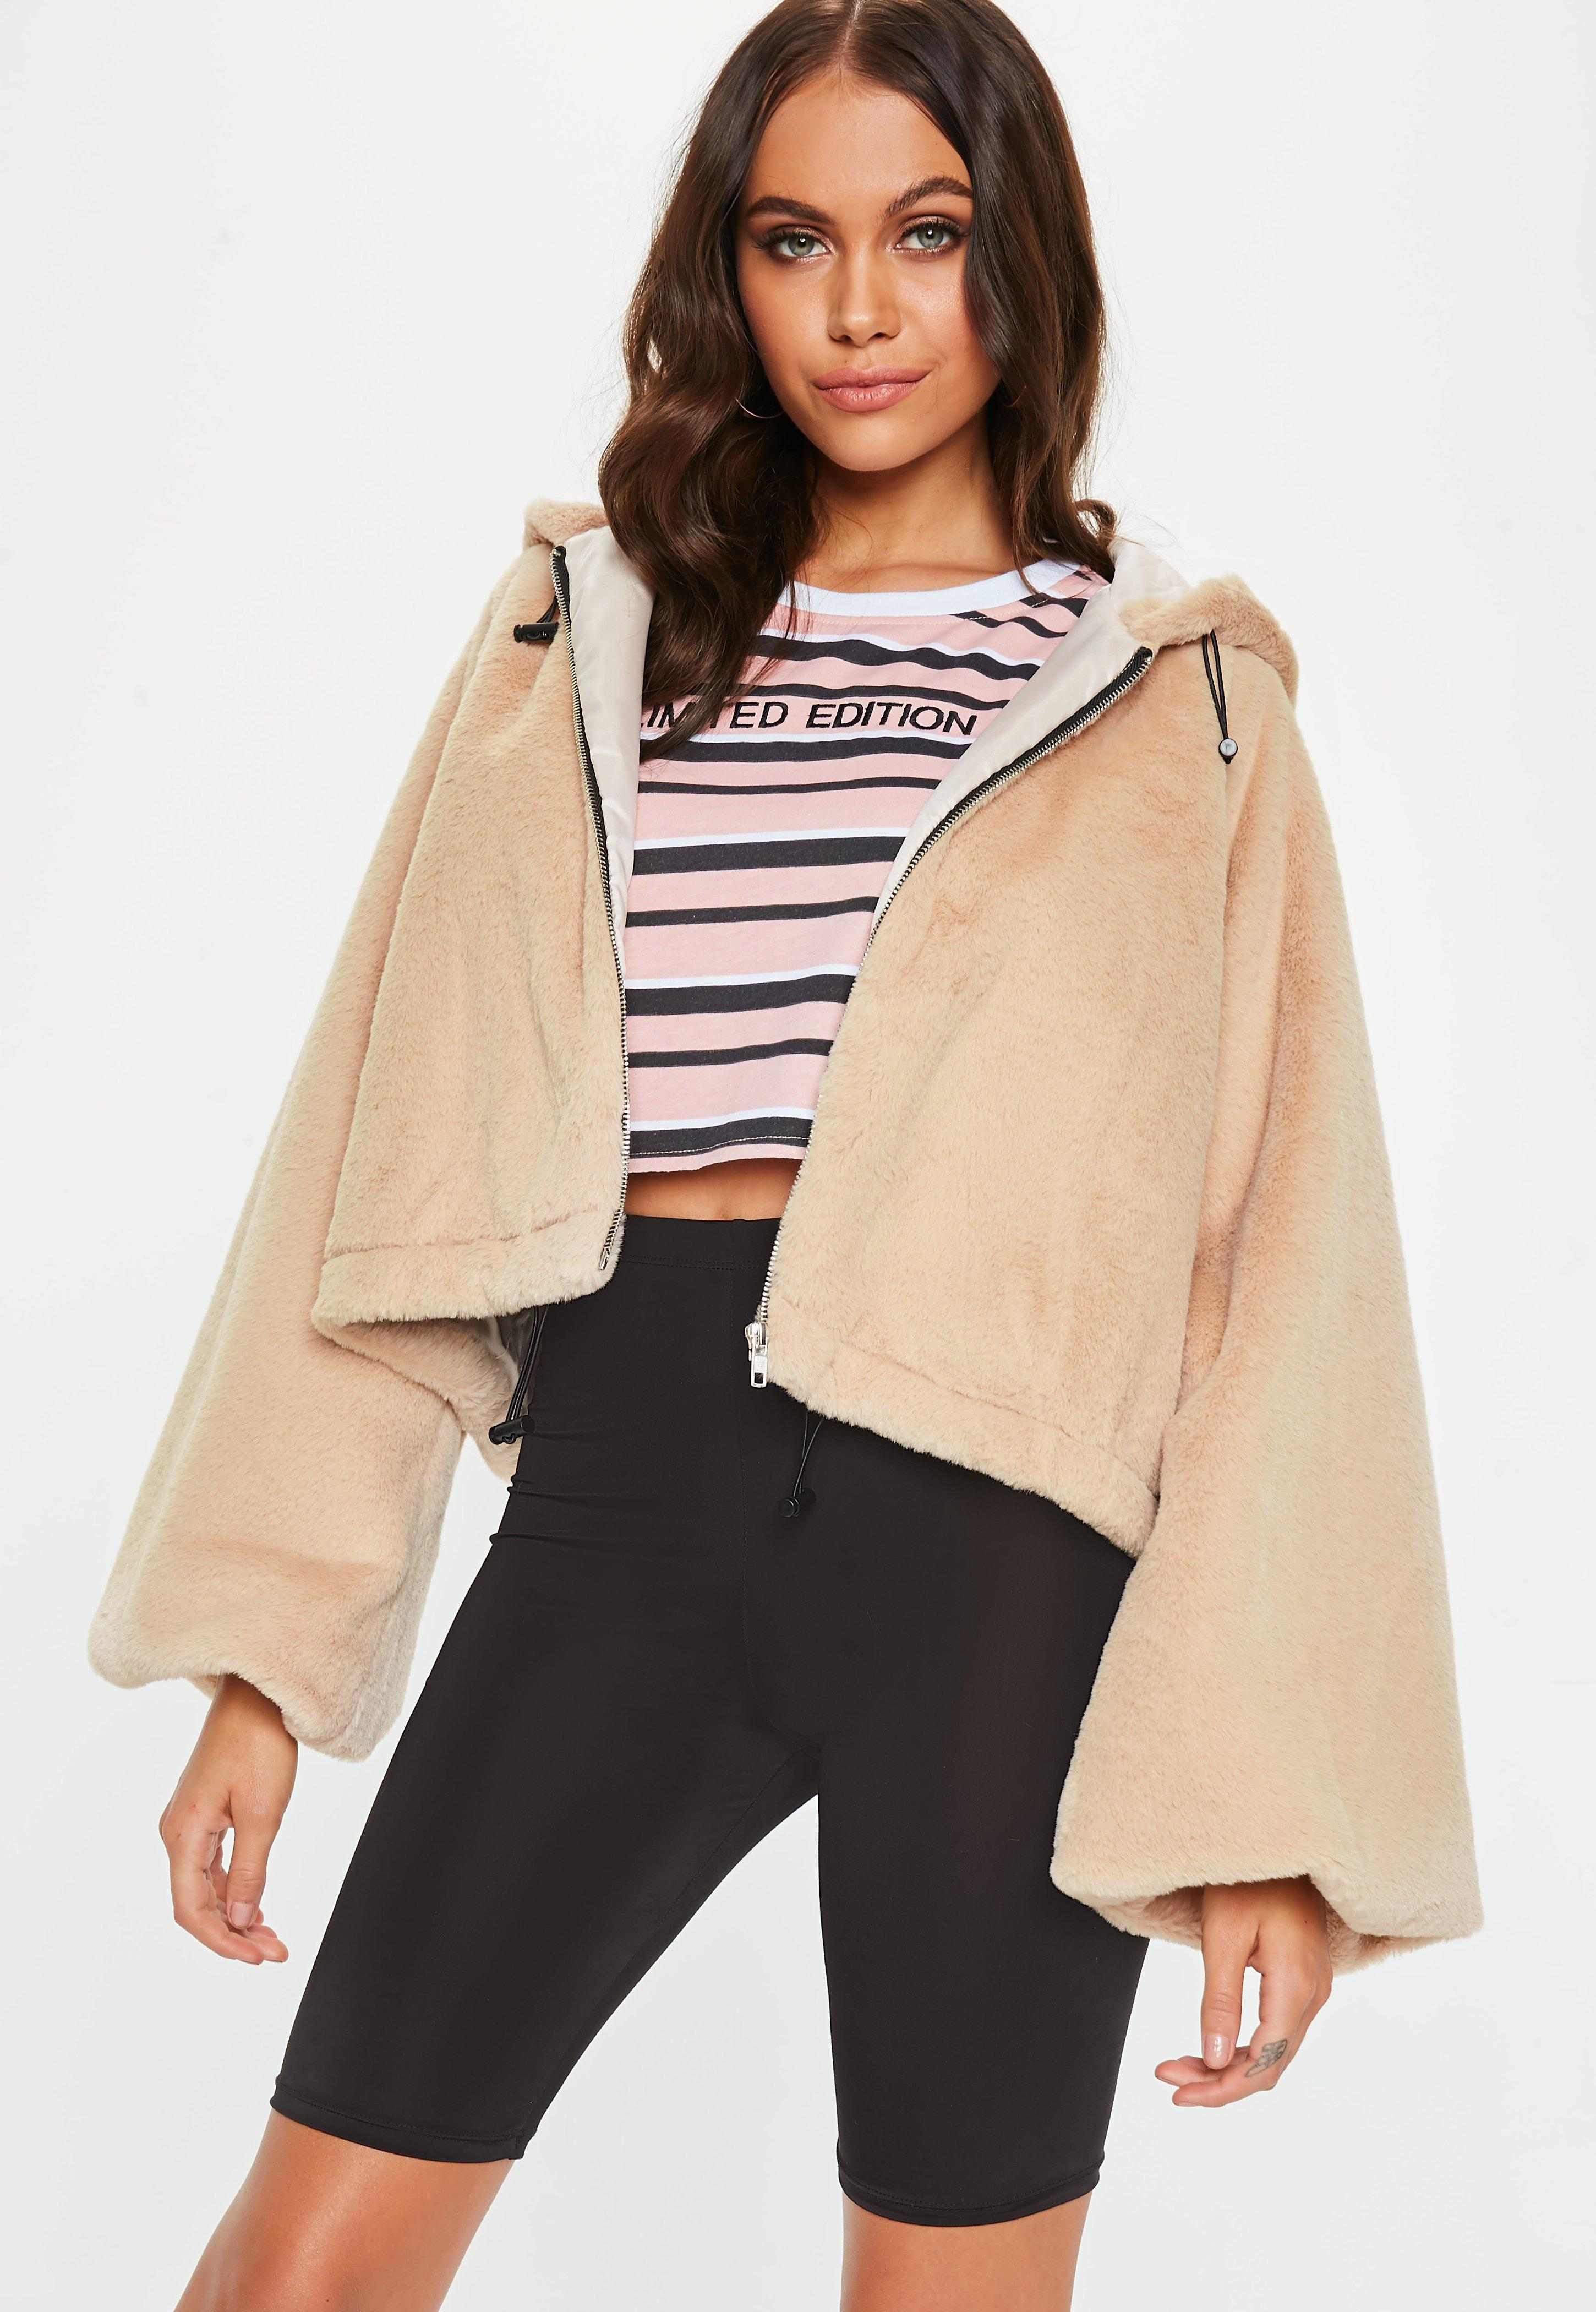 ddddc7fd9a64a Lyst - Missguided Cream Balloon Sleeve Faux Fur Coat in Natural ...